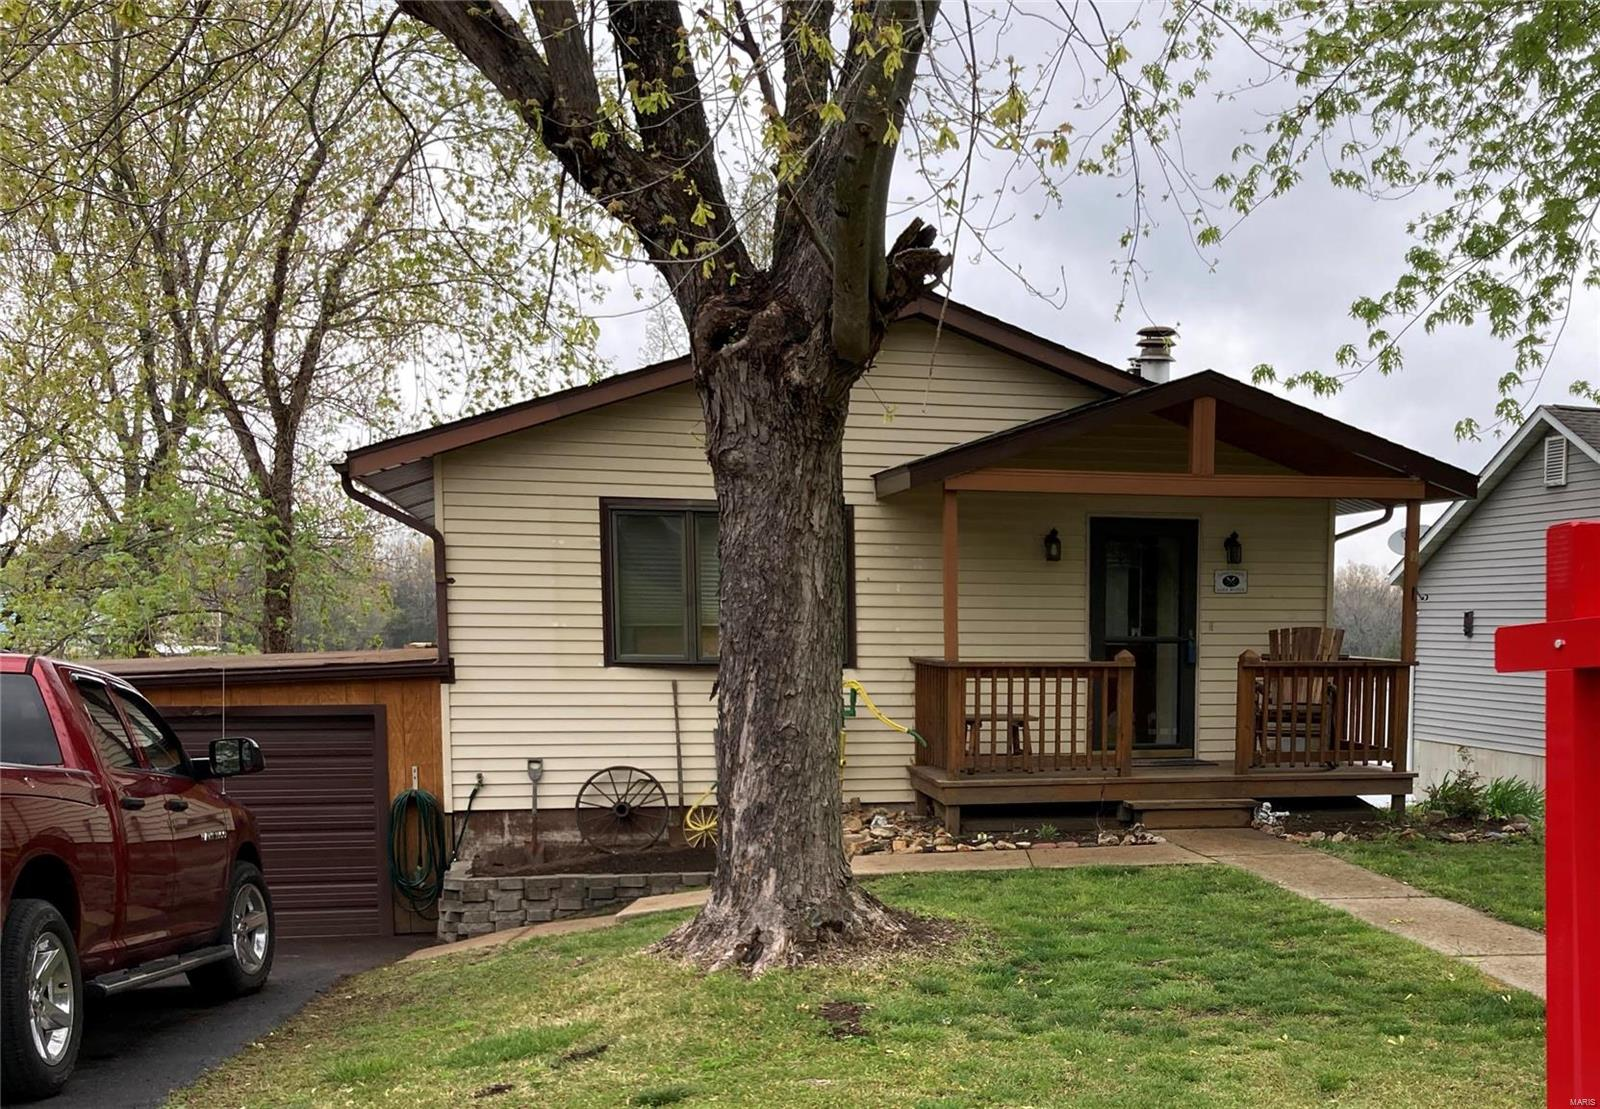 210 W Lakeshore Property Photo - De Soto, MO real estate listing